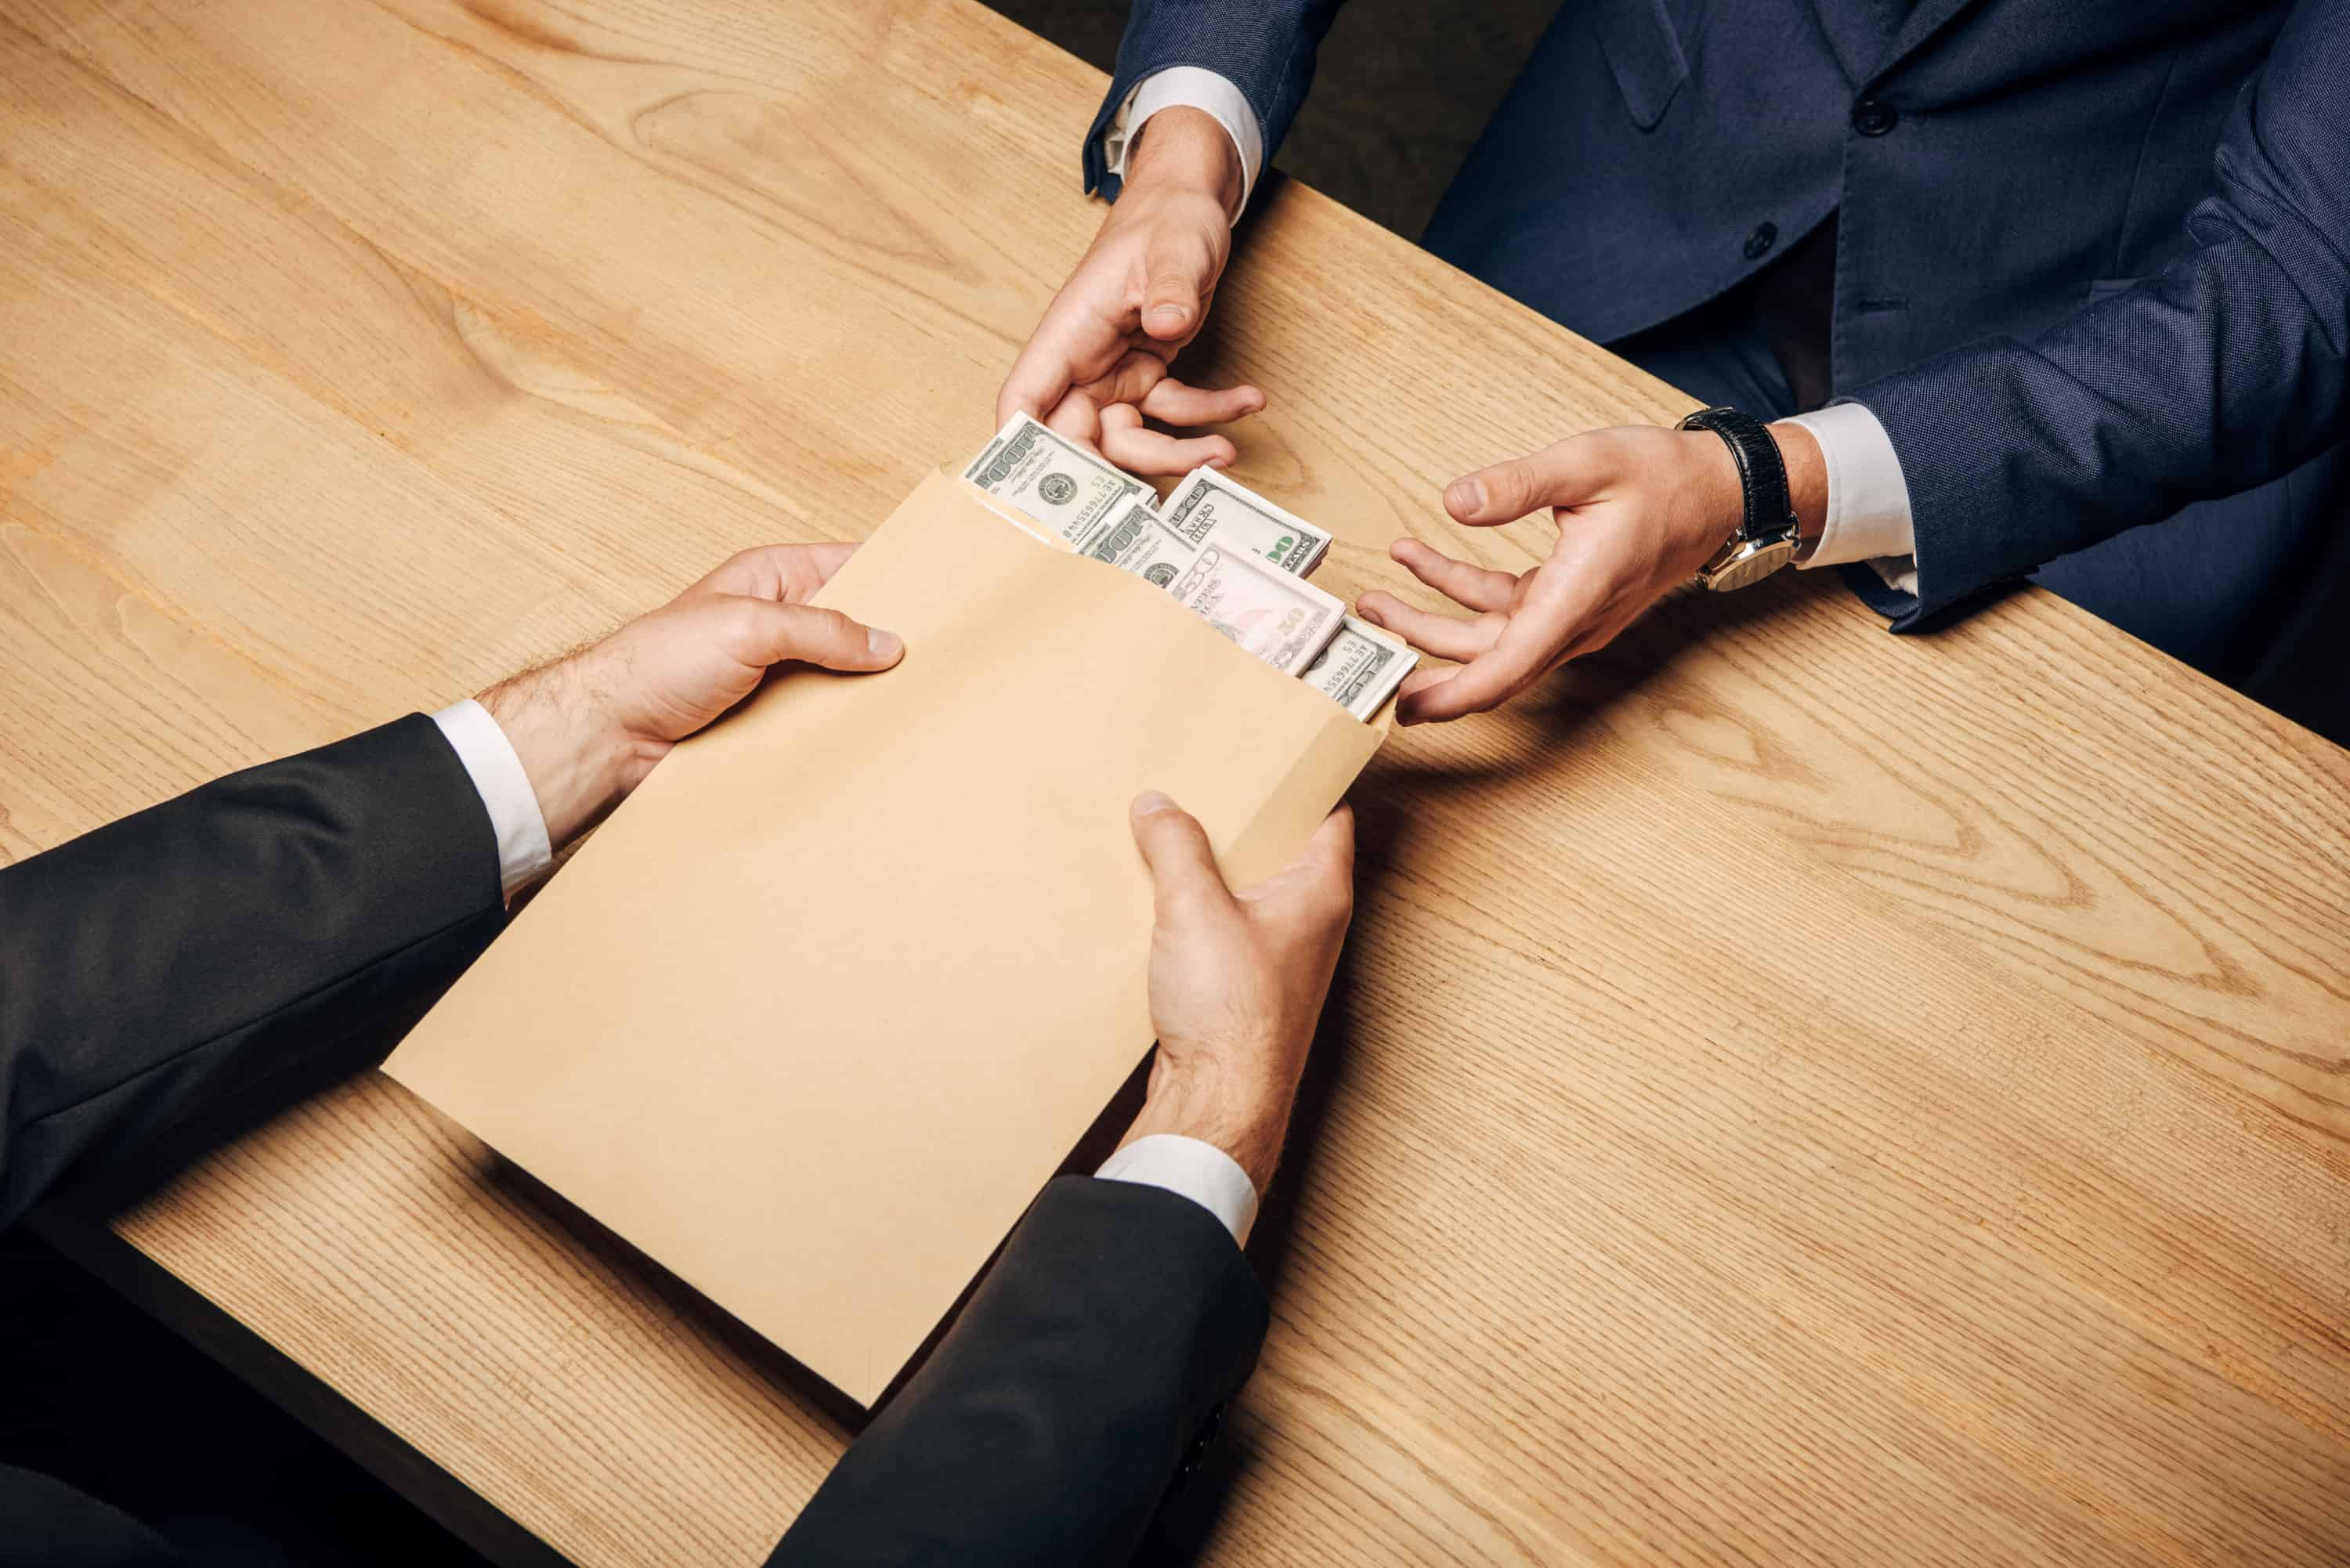 Recovering unclaimed property in a plain brown envelope containing $50 and $100 bills.